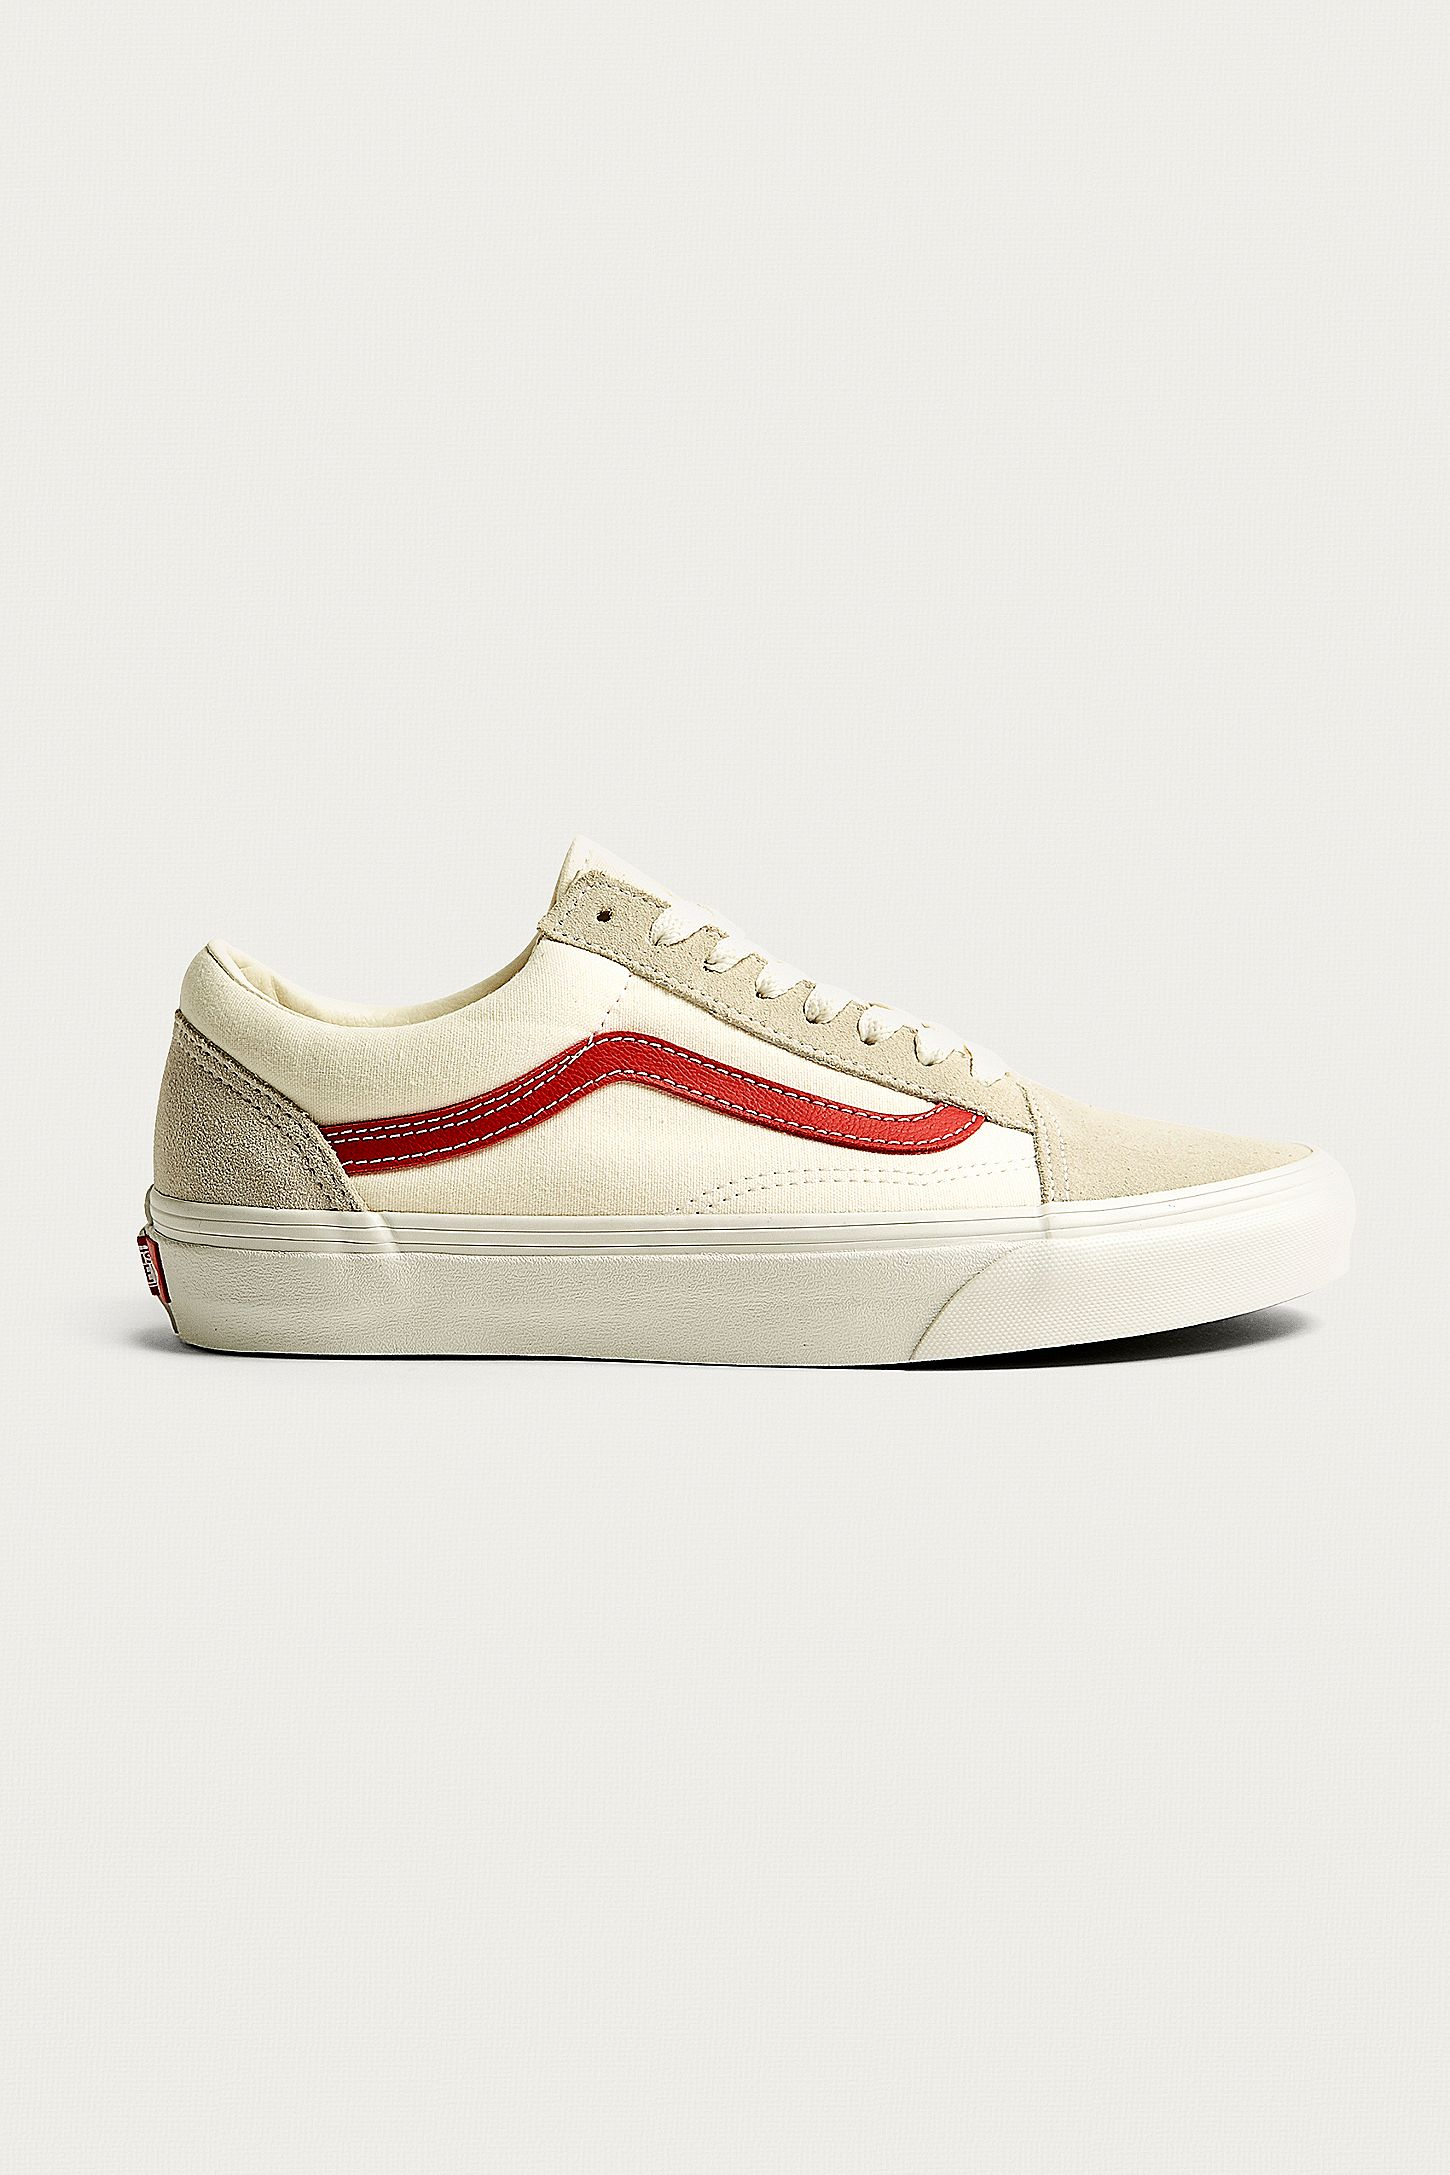 28249b9f1f Vans Old Skool White and Red Trainers. Click on image to zoom. Hover to  zoom. Double Tap to Zoom